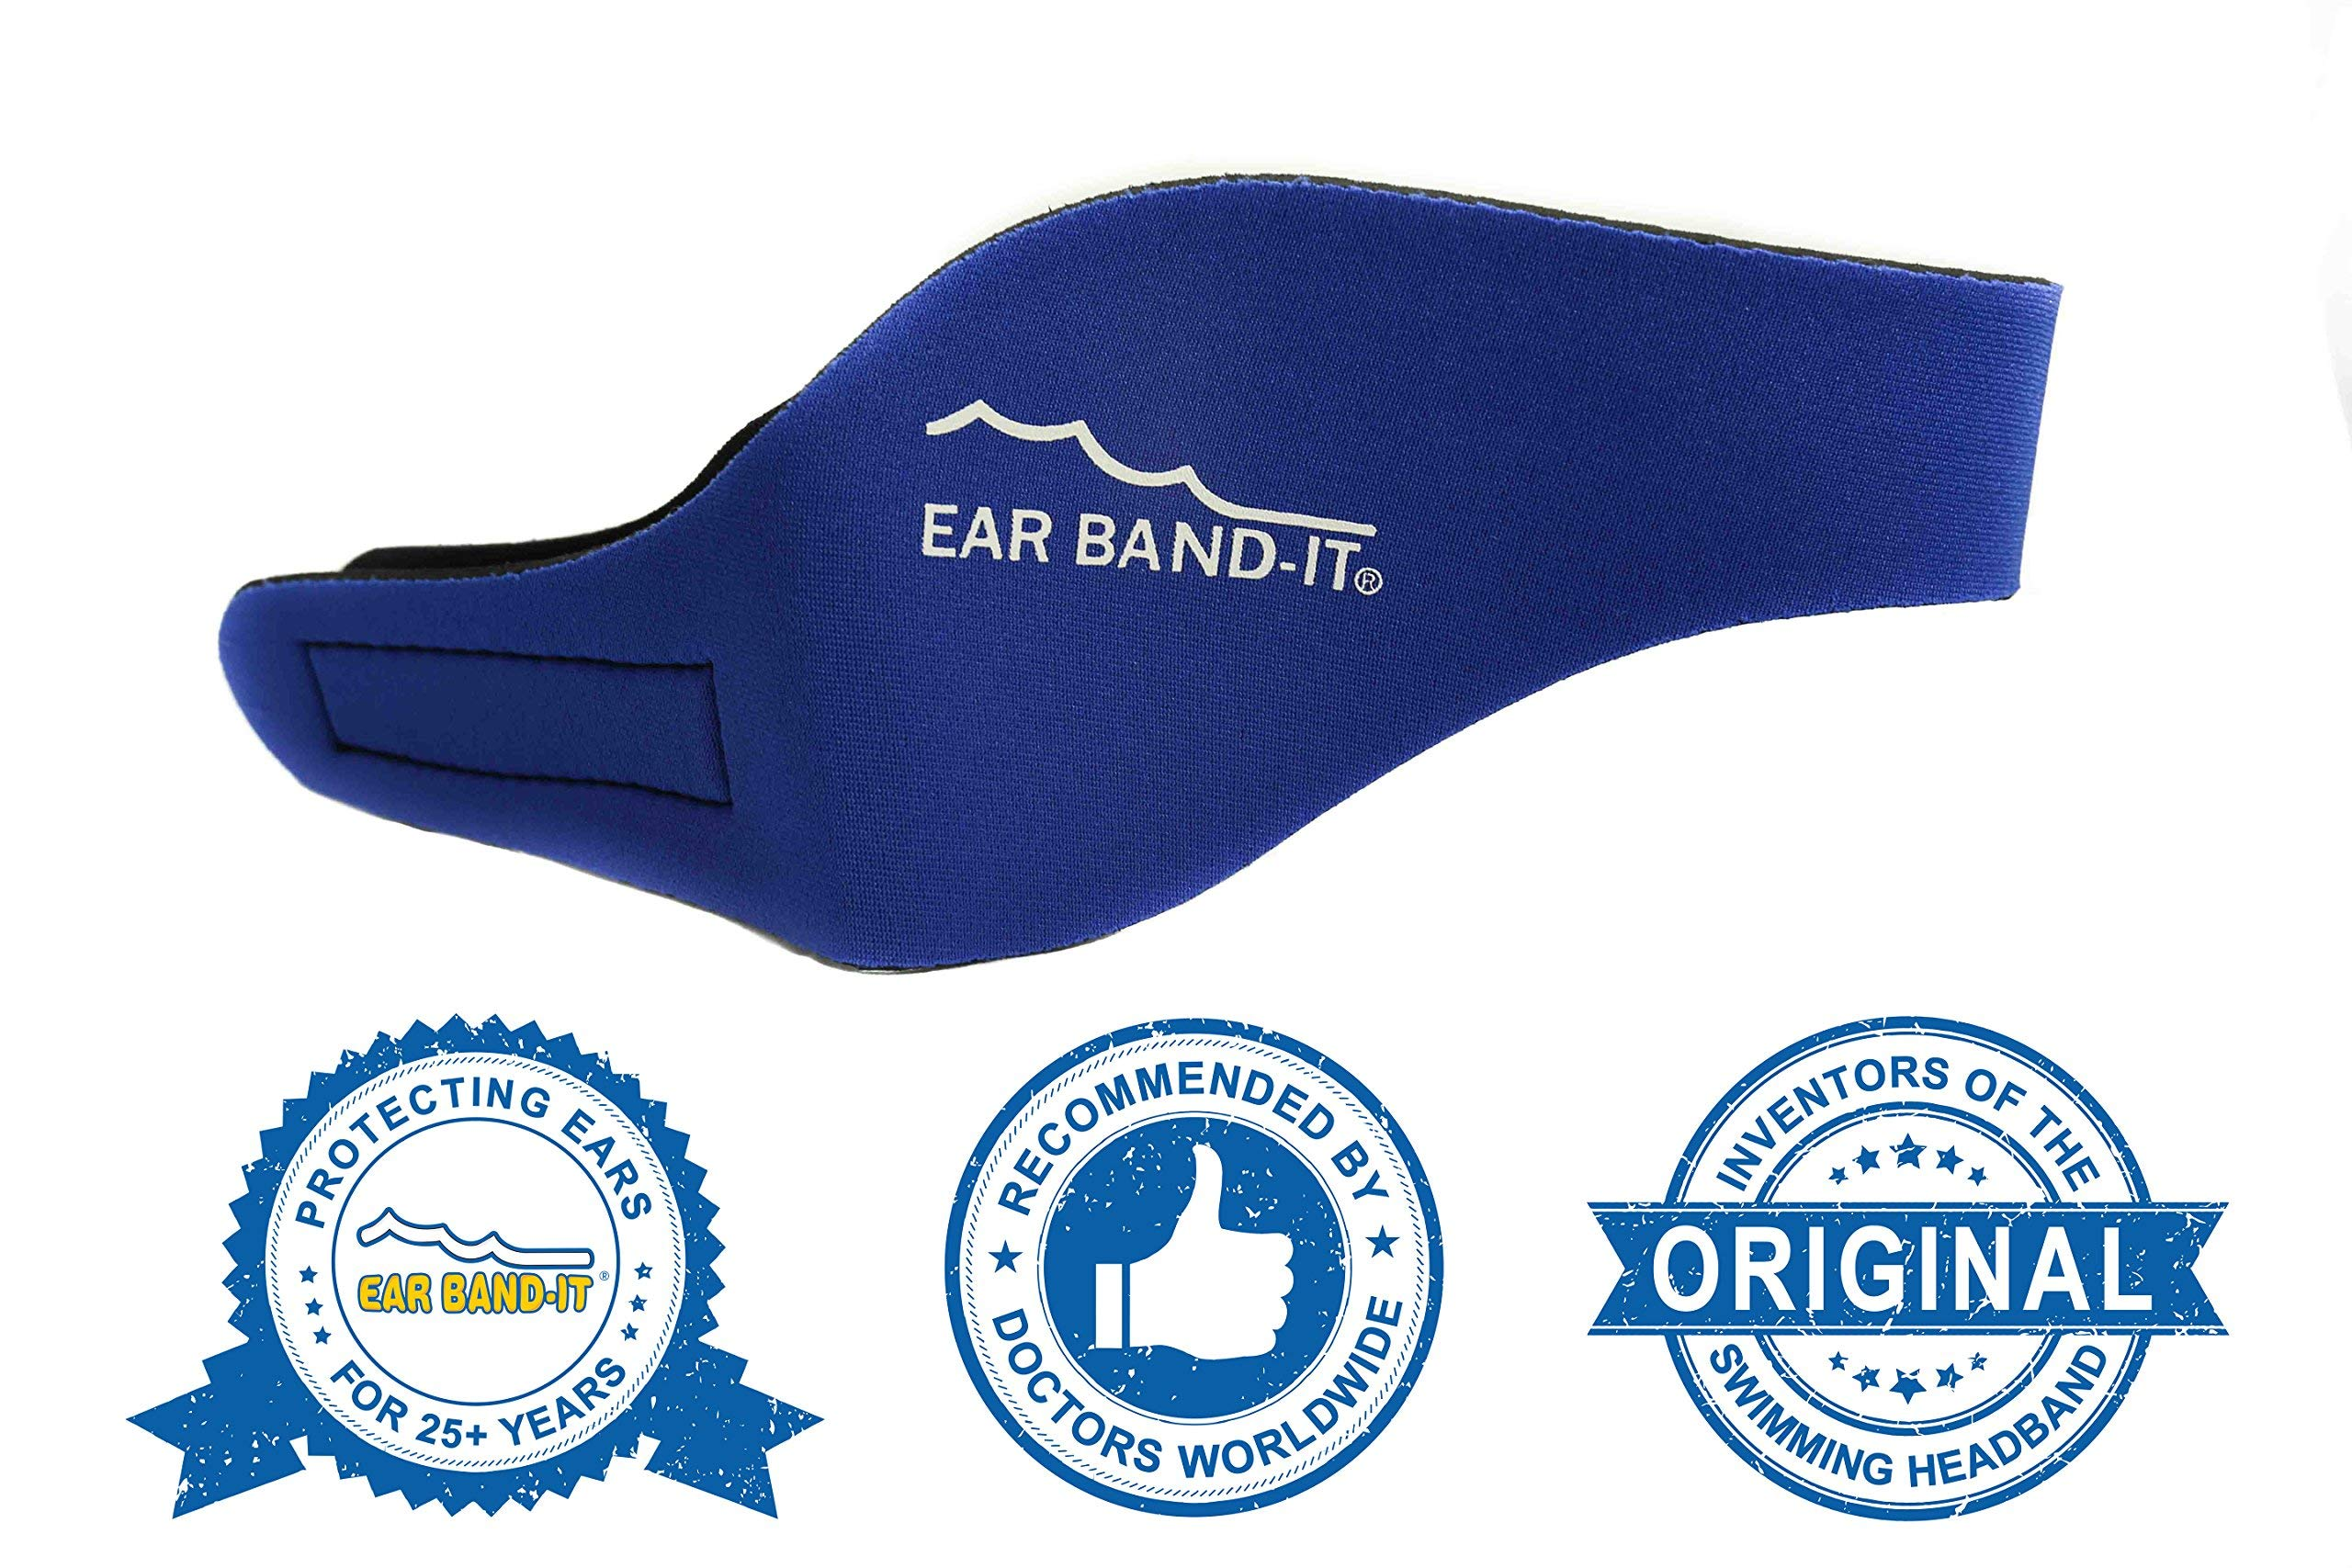 Ear Band-It Swimming Headband - Invented by Physician - Hold Ear Plugs in - The Original Swimmer's Headband - Doctor Recommended - Secure Earplugs